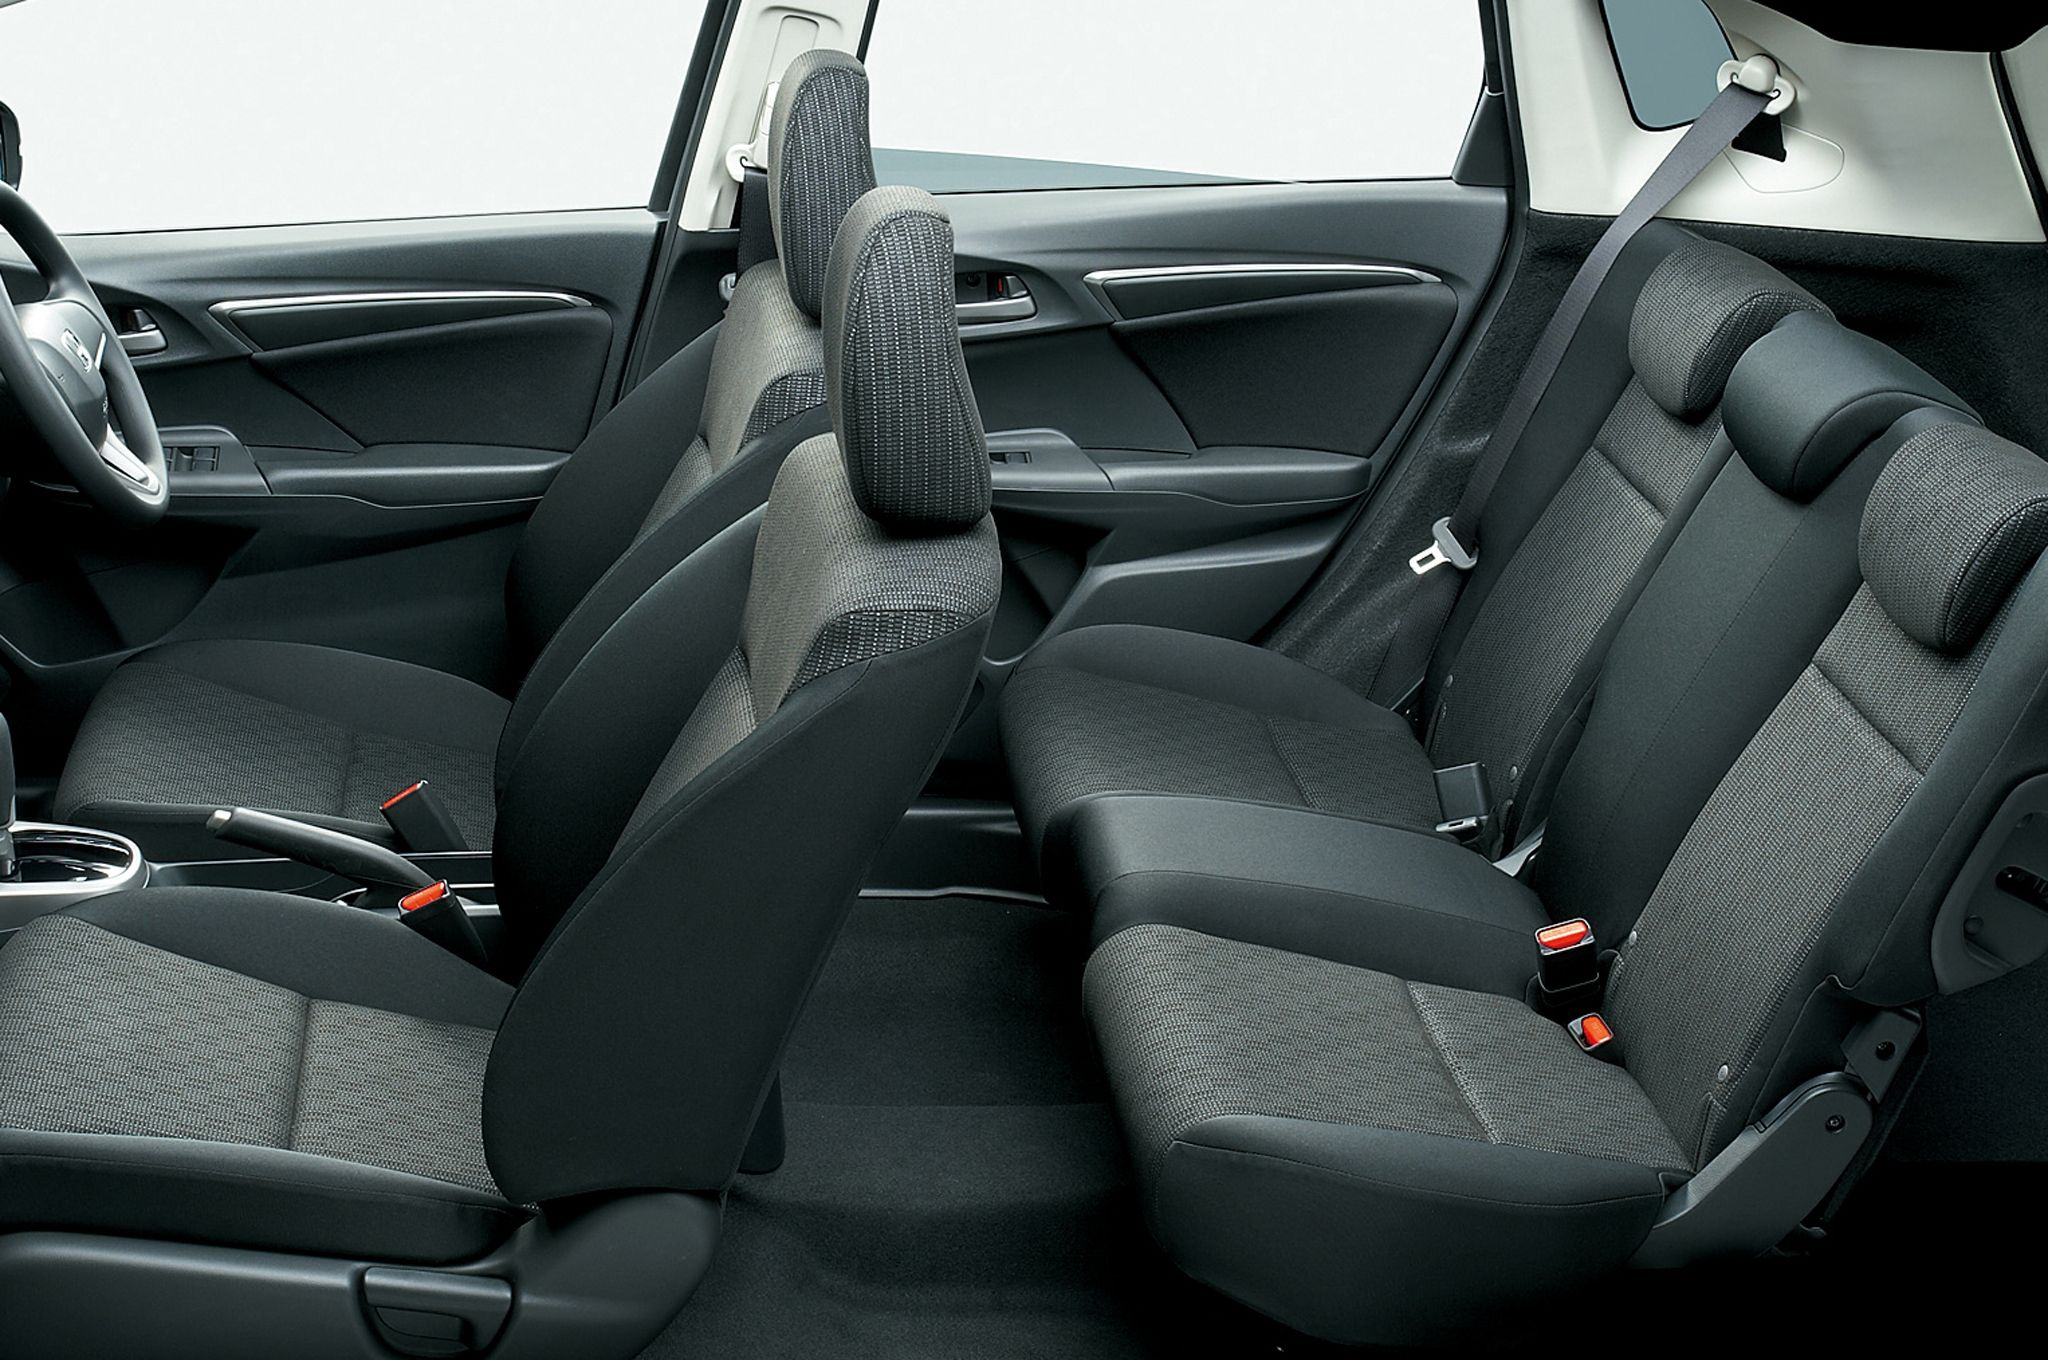 2015 honda fit interior and seats automotive pictures wallpapers